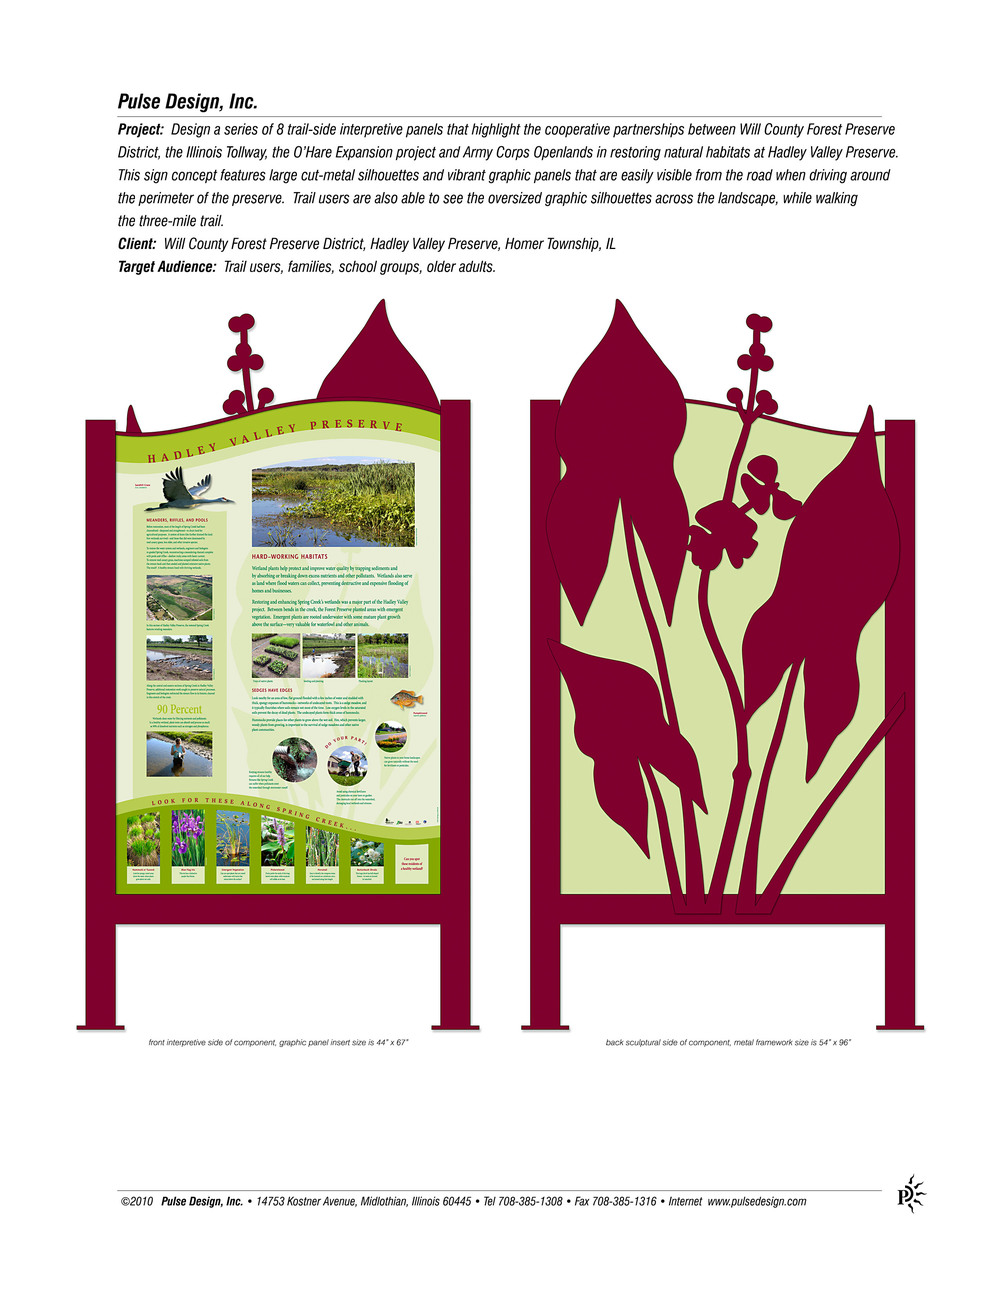 Hadley-Valley-Trail-Sign-Arrowhead-Lg-Pulse-Design-Inc.jpg